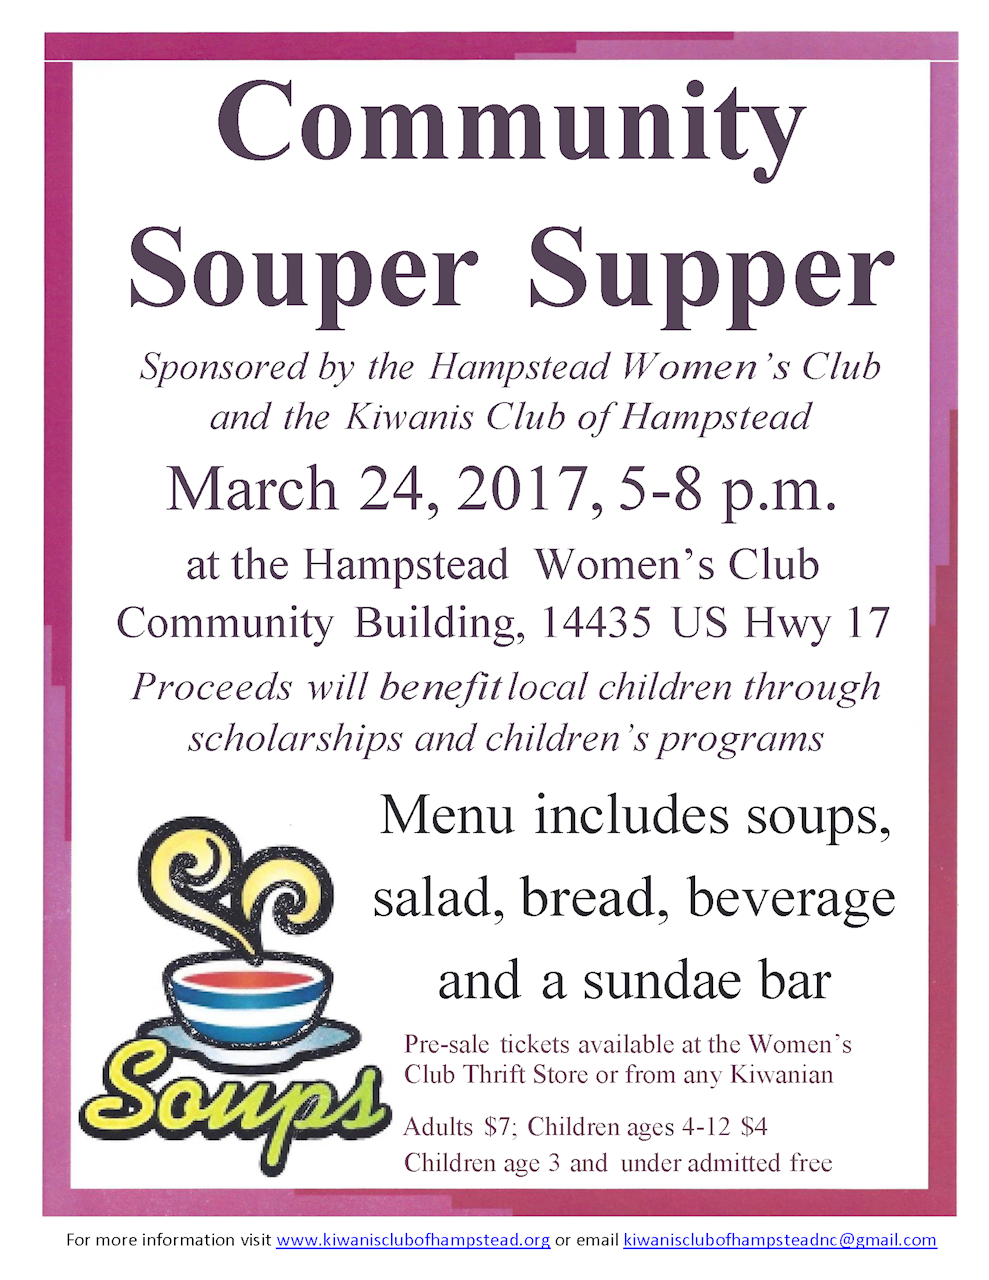 2016 Souper Supper